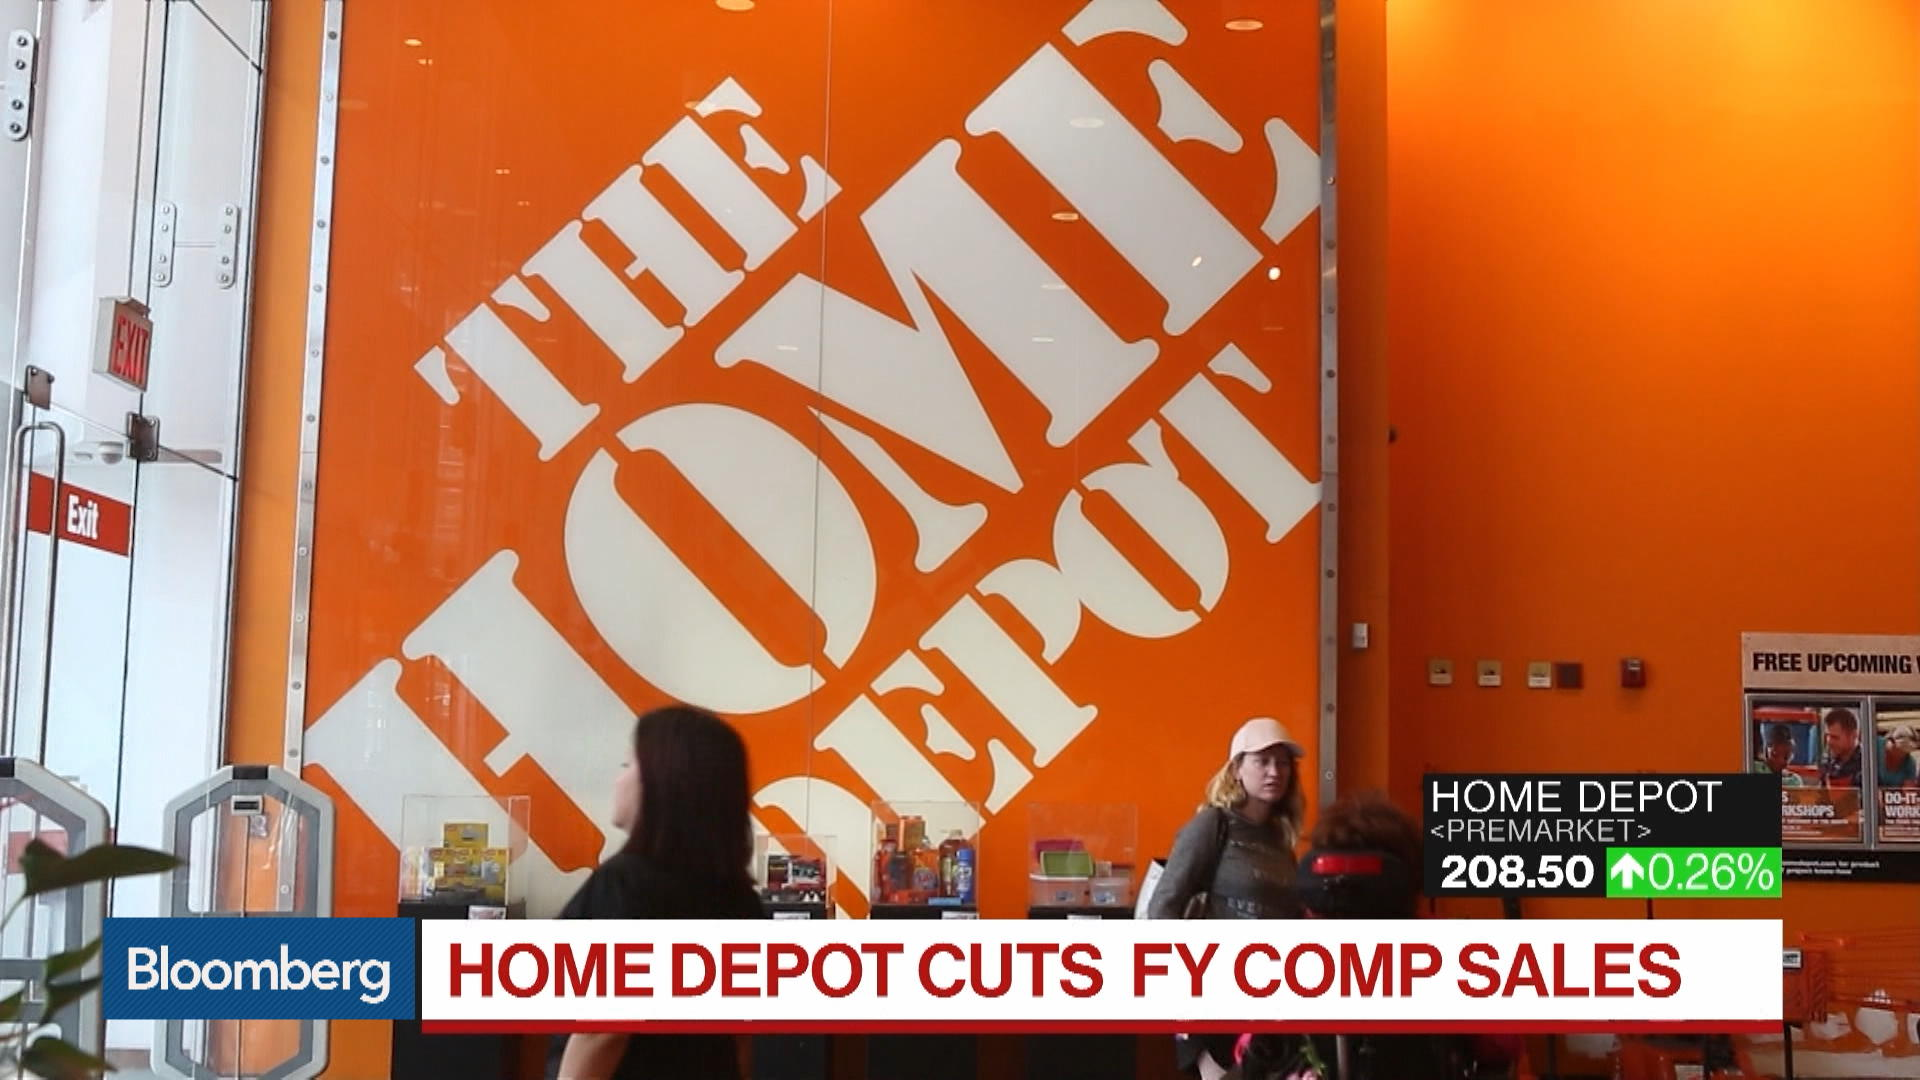 HD:New York Stock Quote - Home Depot Inc/The - Bloomberg Markets